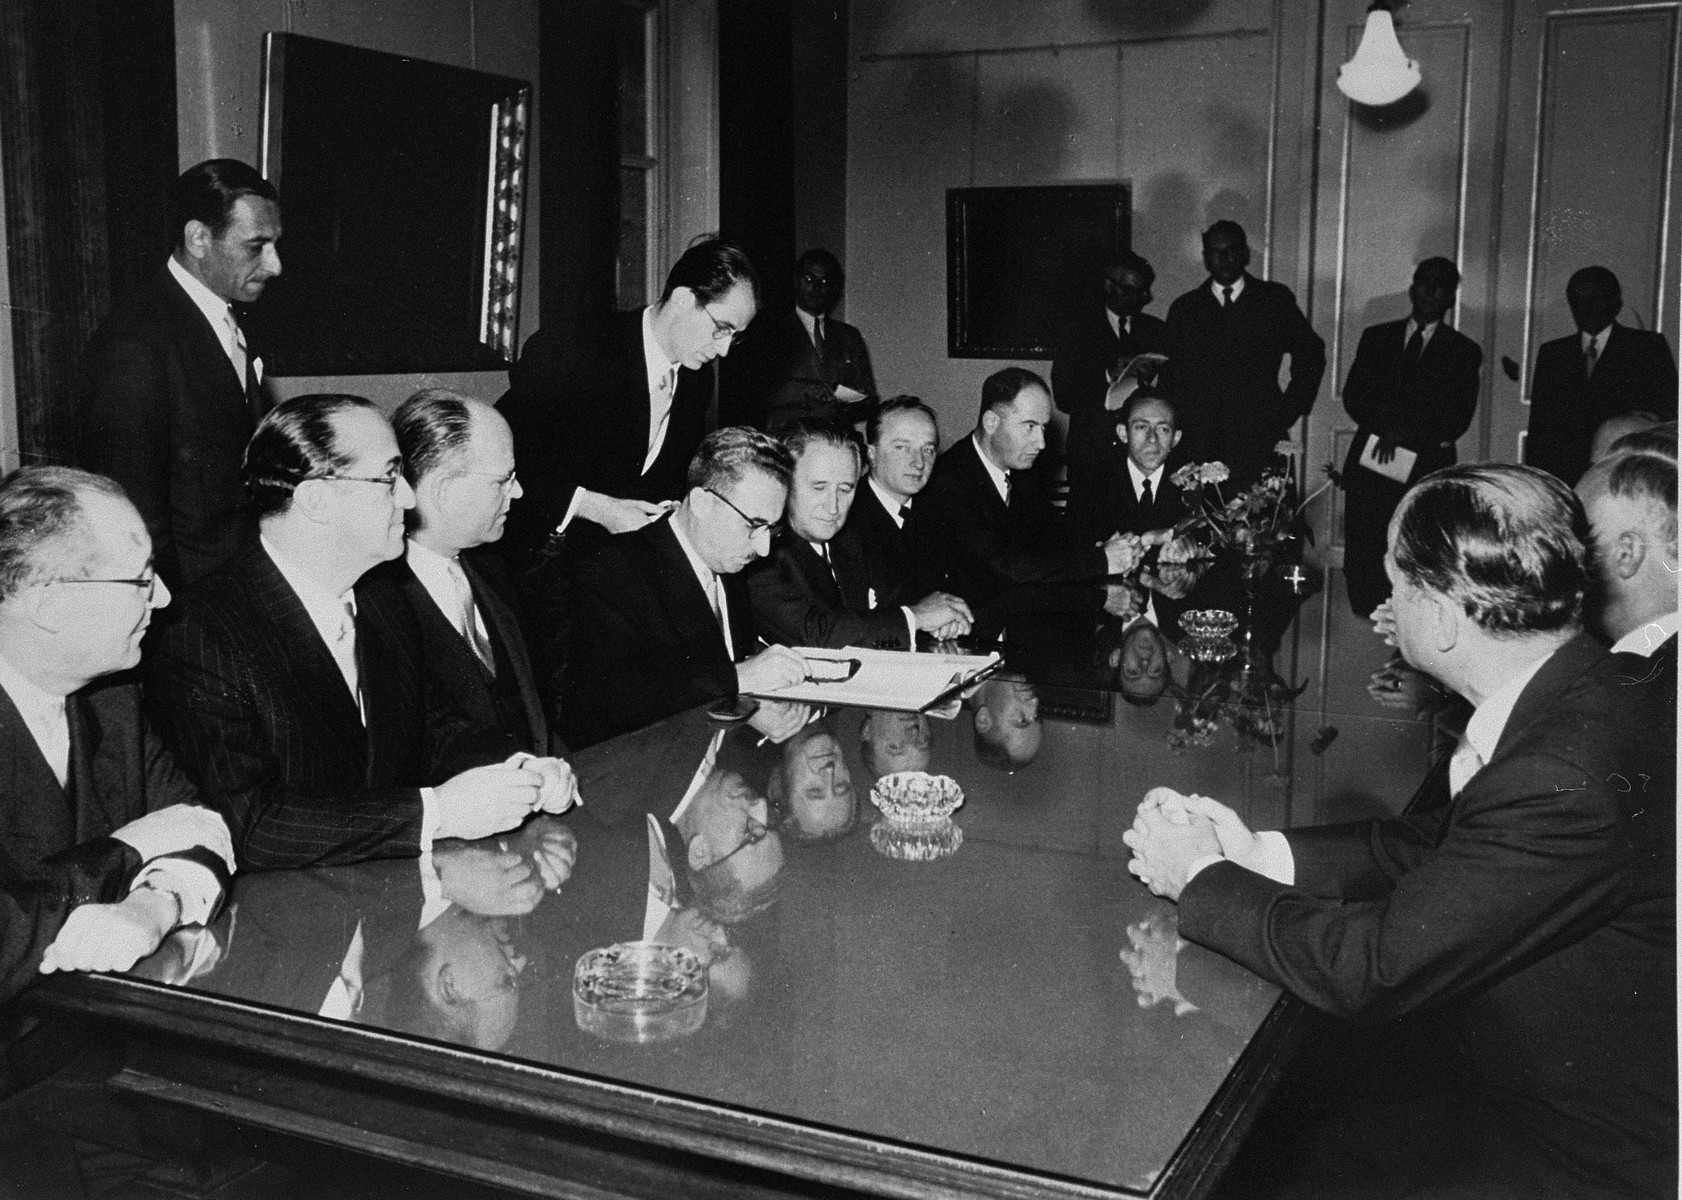 The signing of the Reparations Agreement between the German Federal Republic, the State of Israel, and the Conference on Jewish Material Claims.    Seated from left to right are: unknown, Felix Shinnar, Giora Josephthal, Moshe Sharett, Nahum Goldmann, and Benjamin Ferencz.